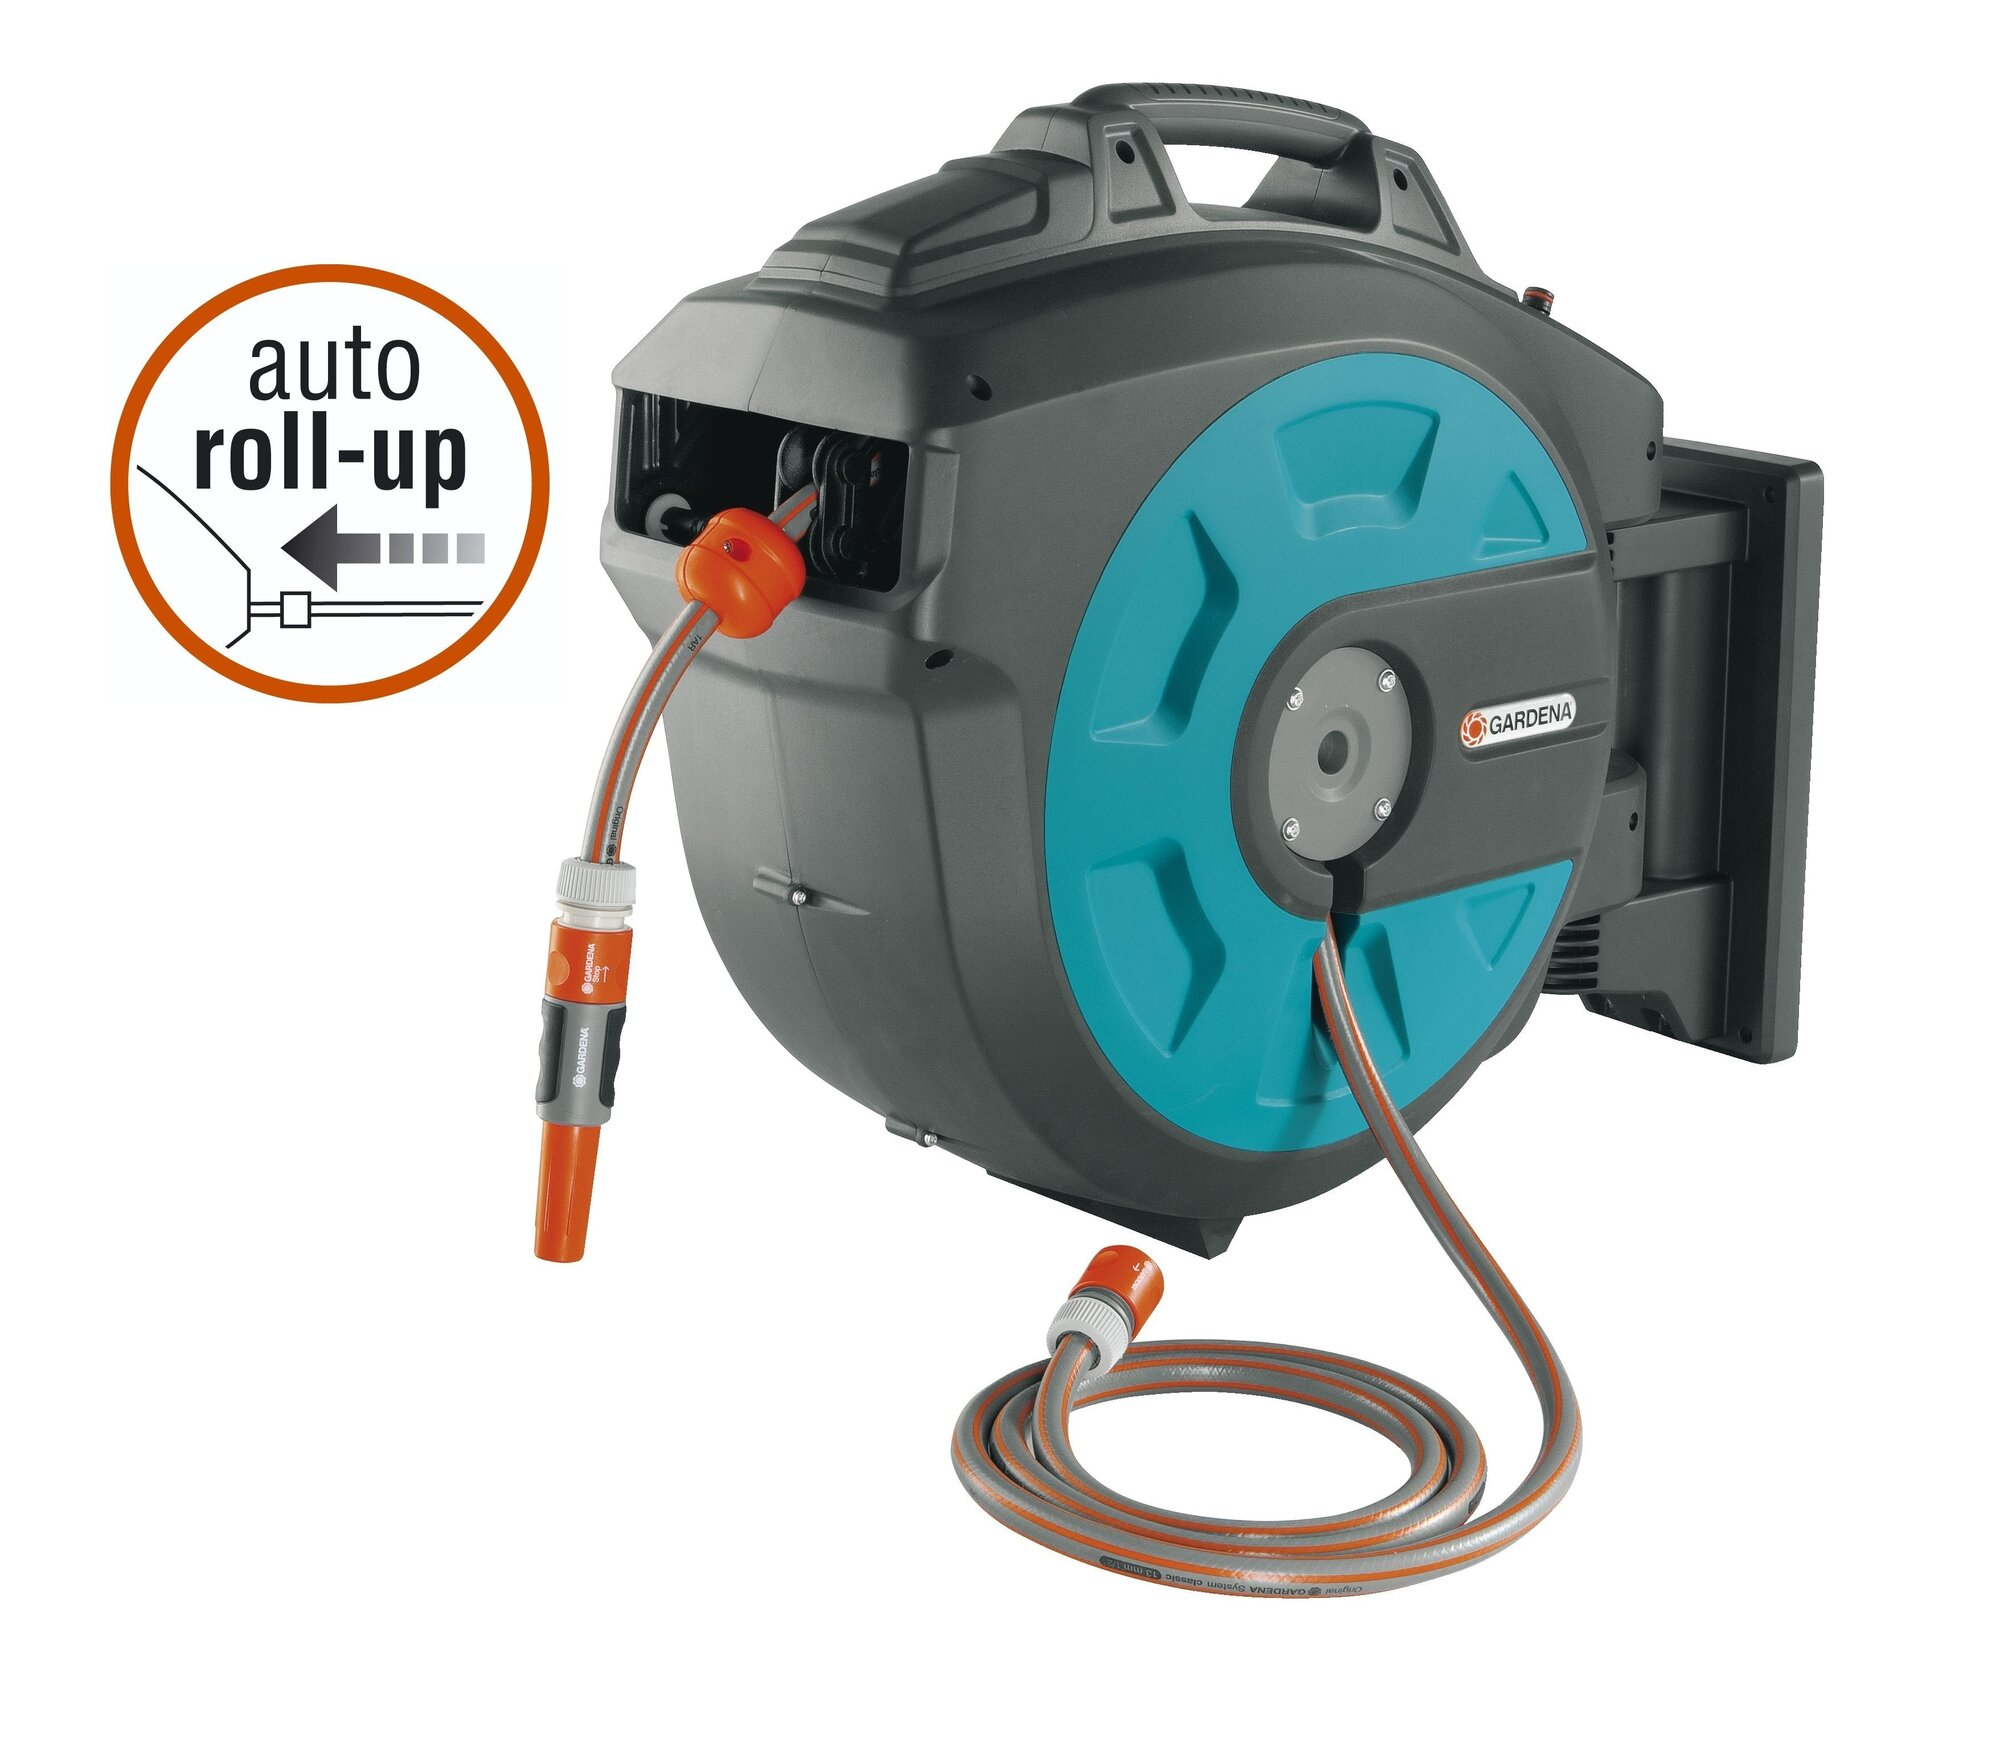 gardena plastic wall mounted hose reel with automatic rewind 82 ft ebay. Black Bedroom Furniture Sets. Home Design Ideas